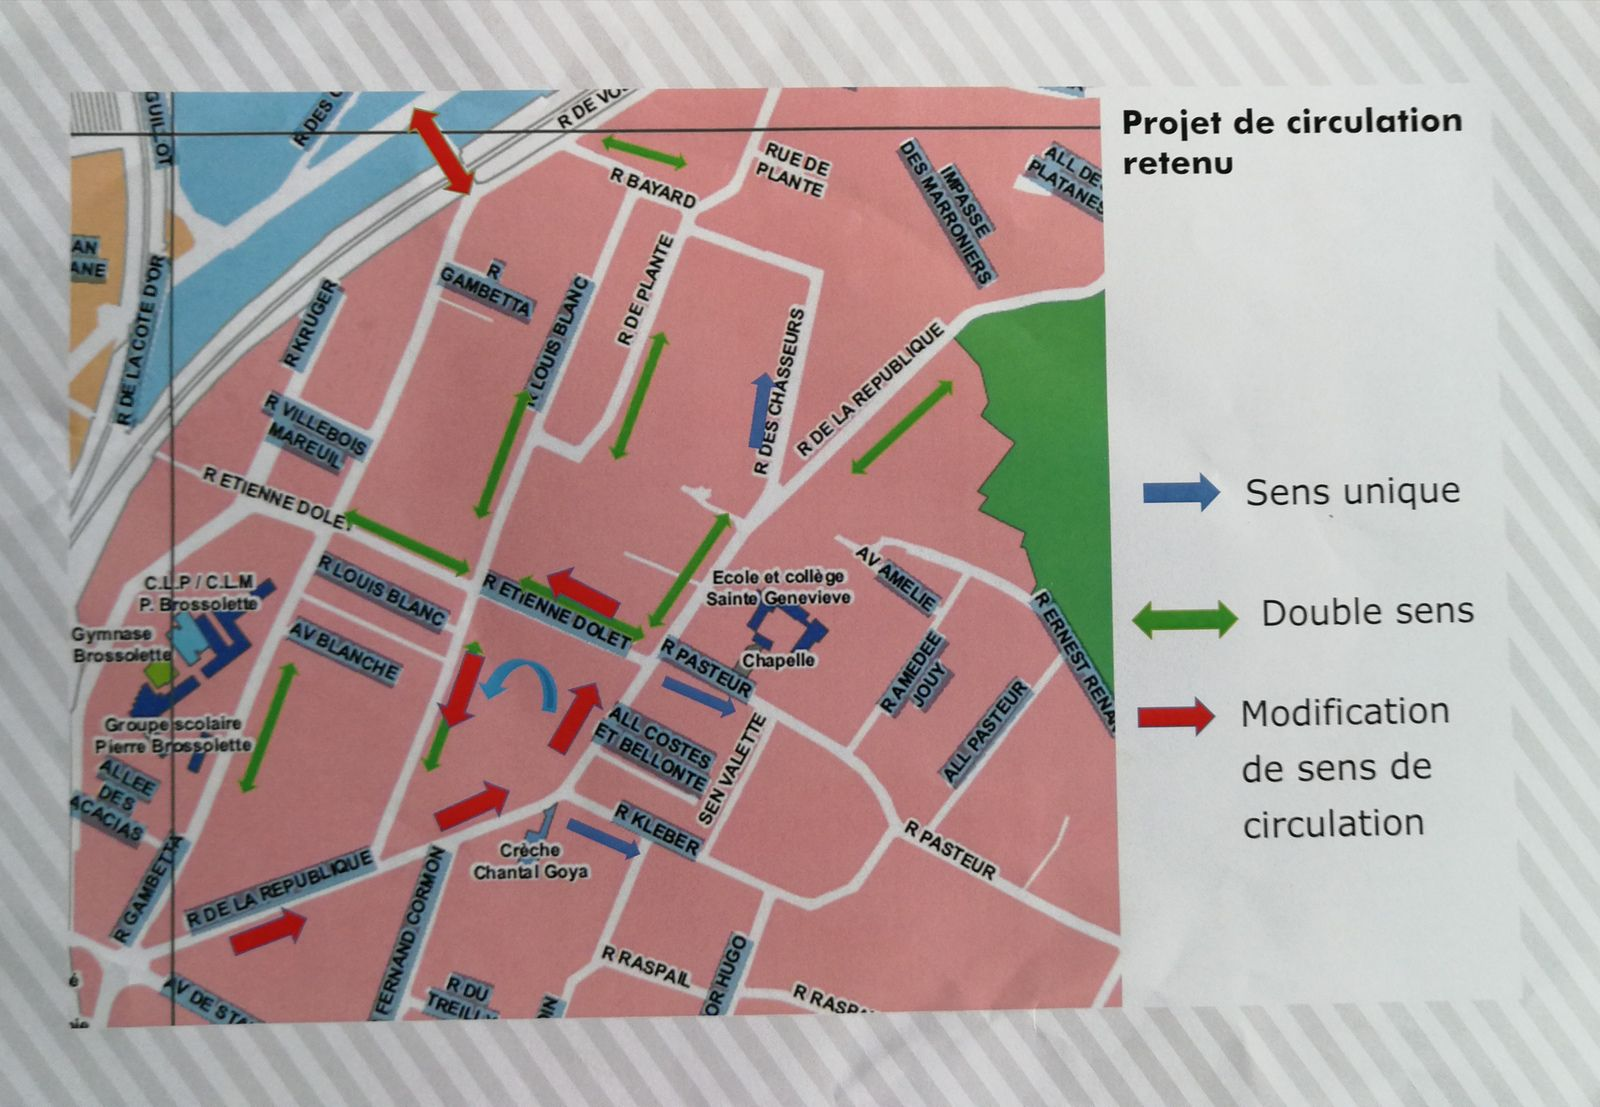 Plan de circulation retenu.